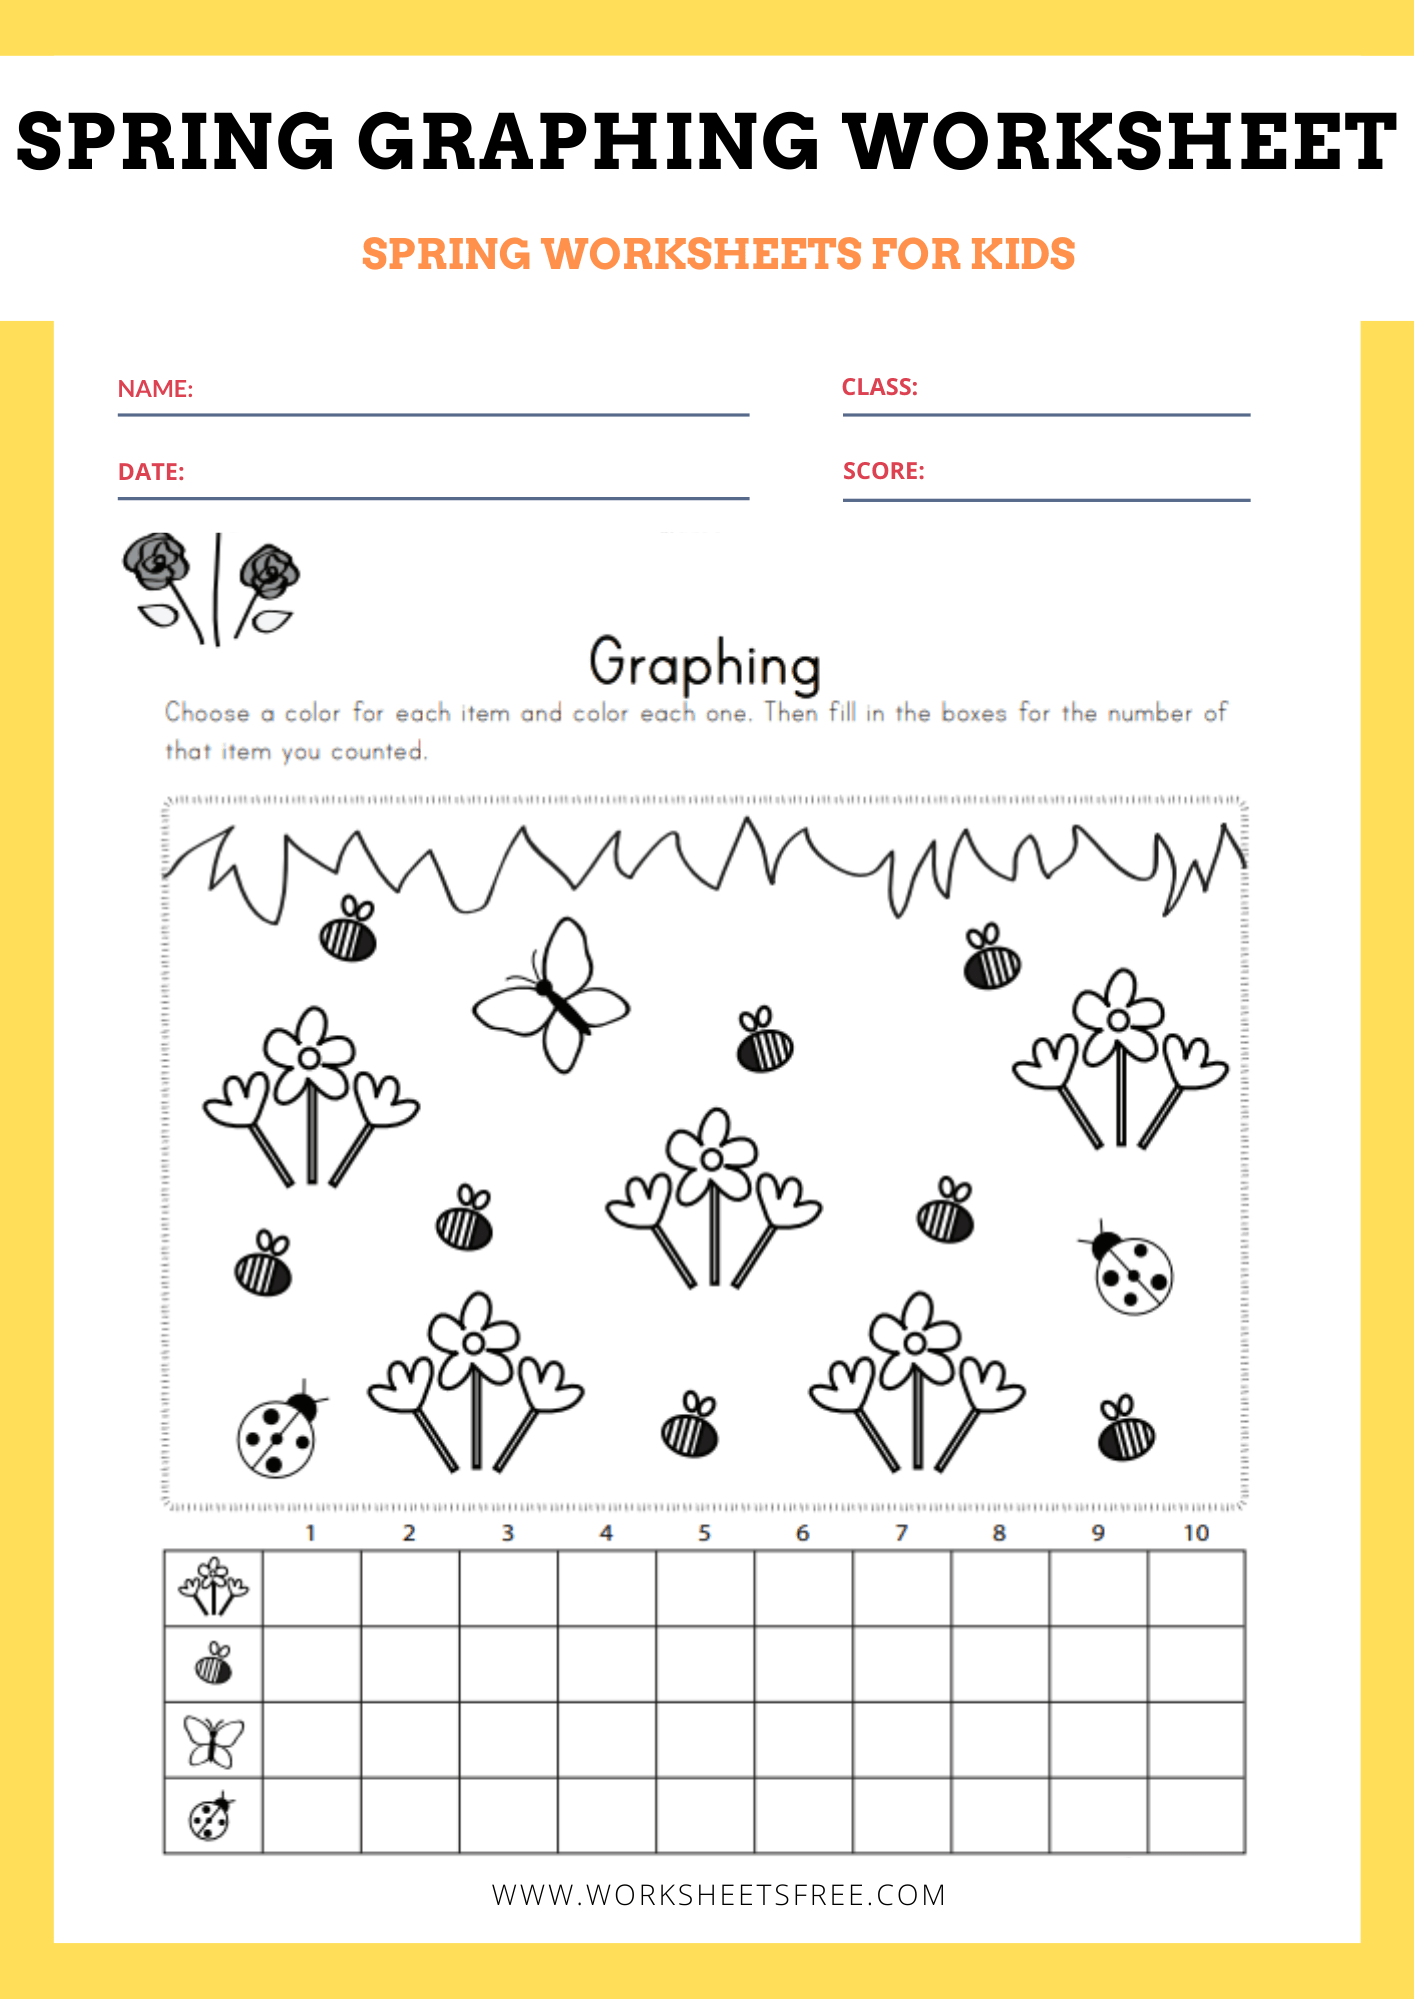 Spring Graphing Worksheet